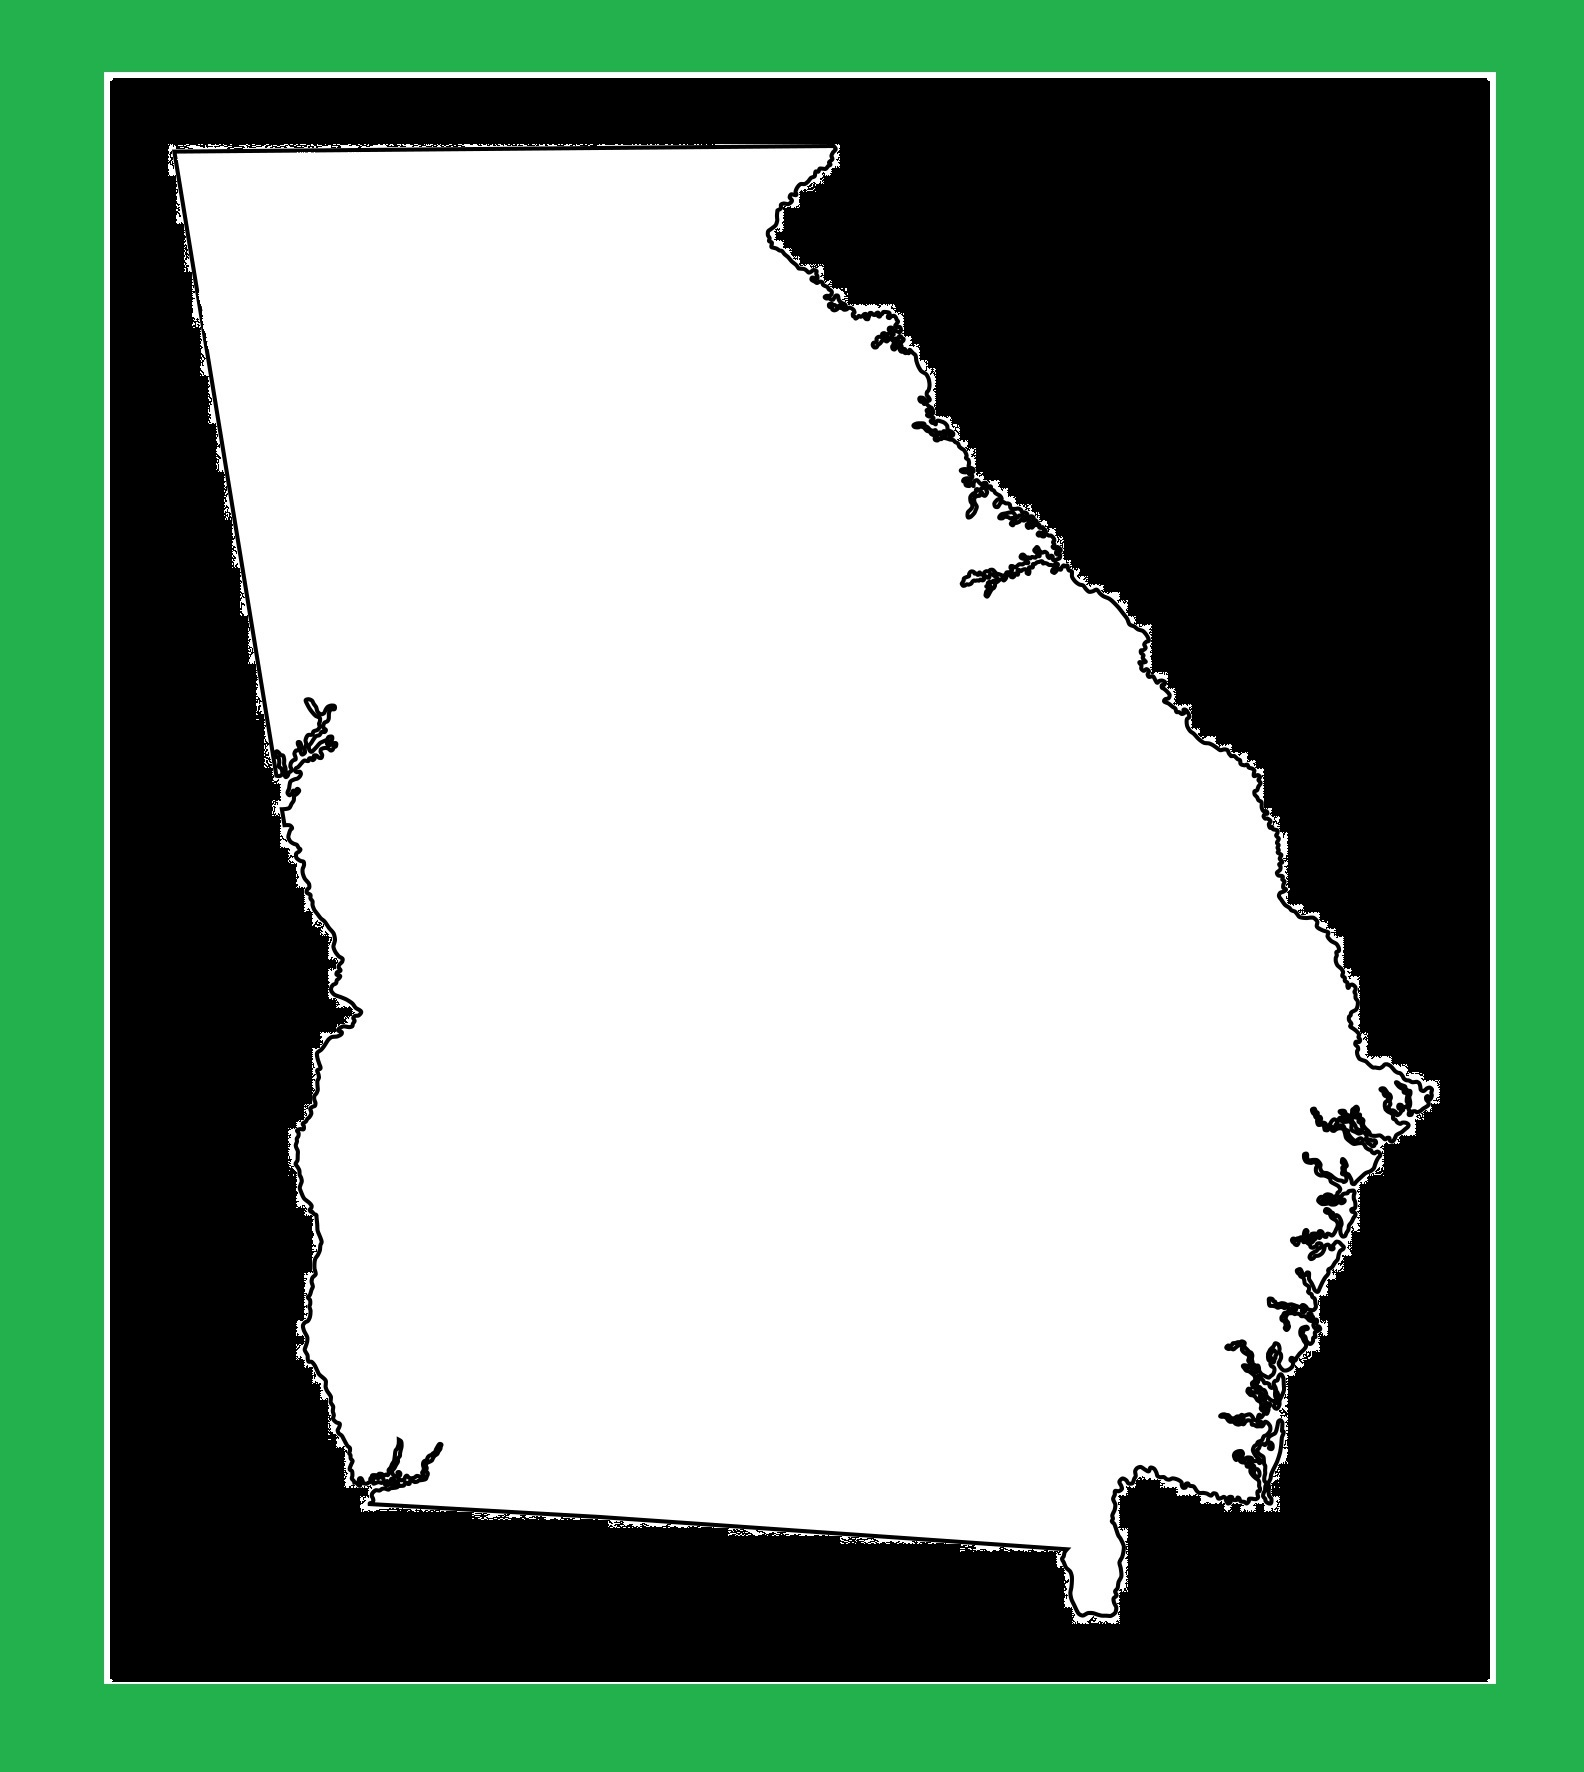 Georgia Blank Outline Map   Large Printable and Standard Map 5